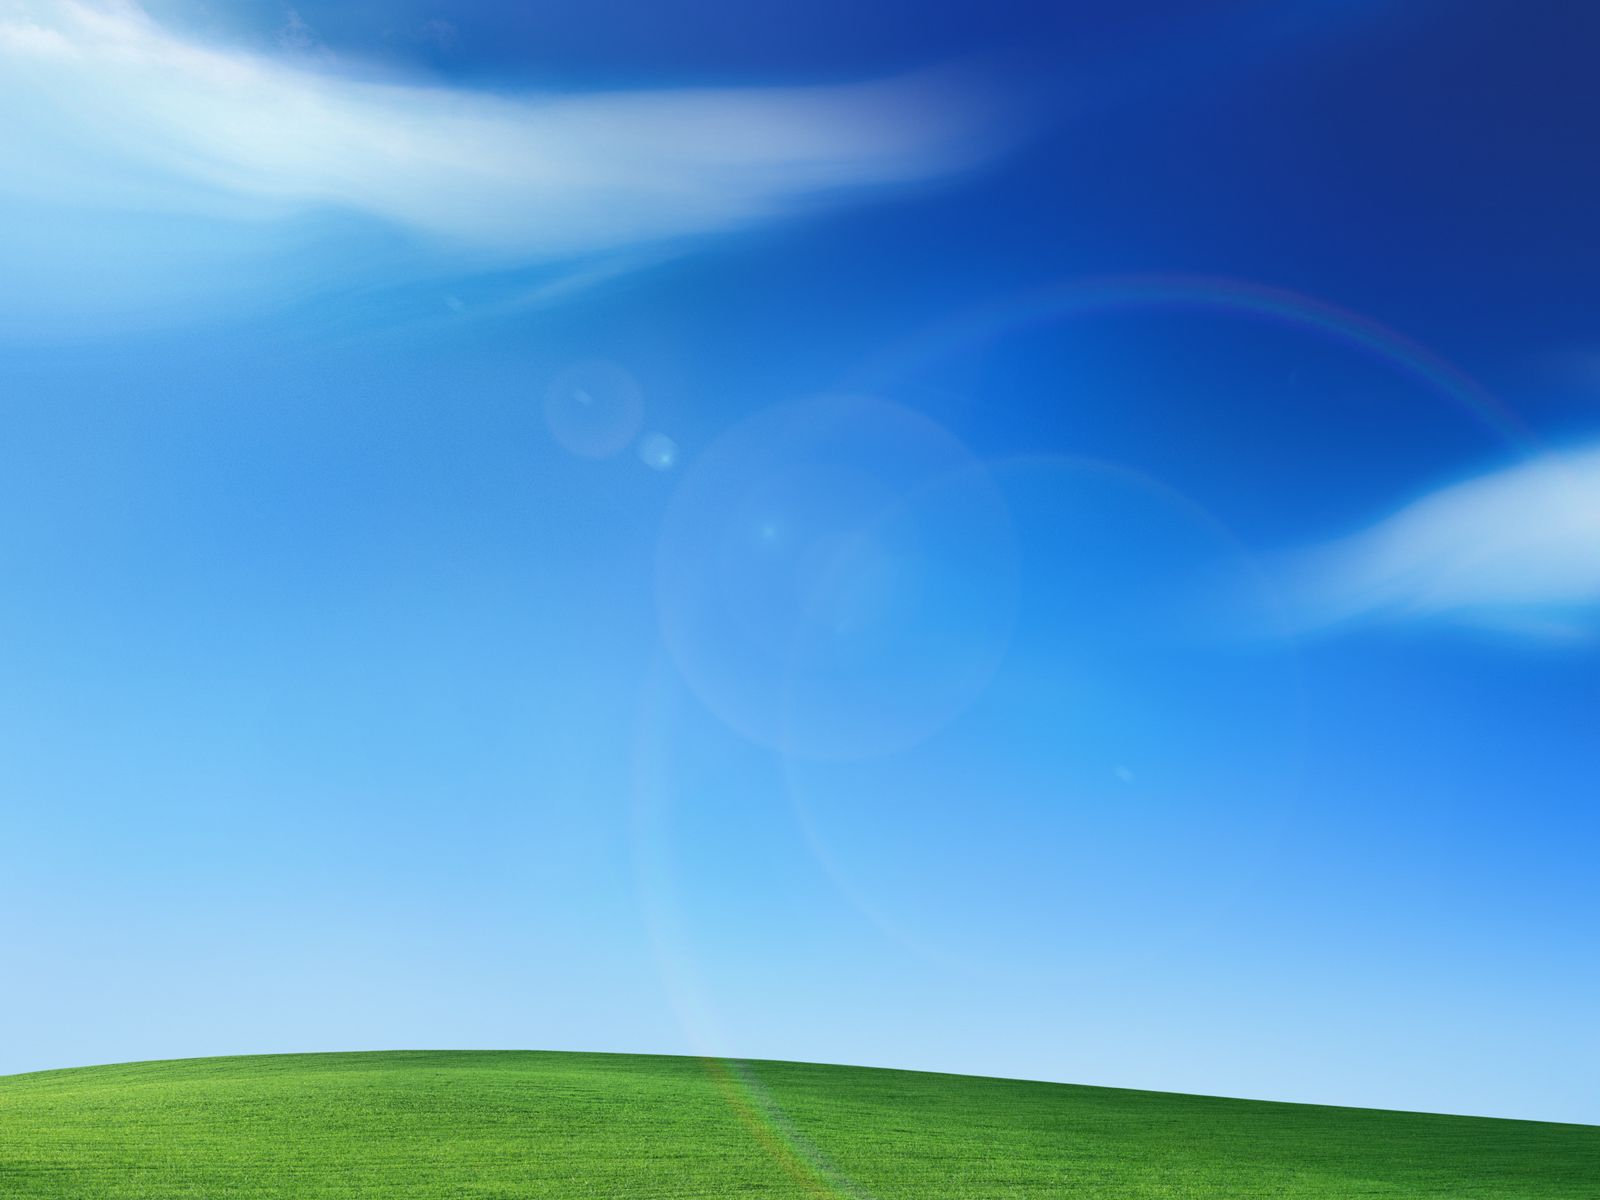 Royal Bliss Windows Xp Wallpaper